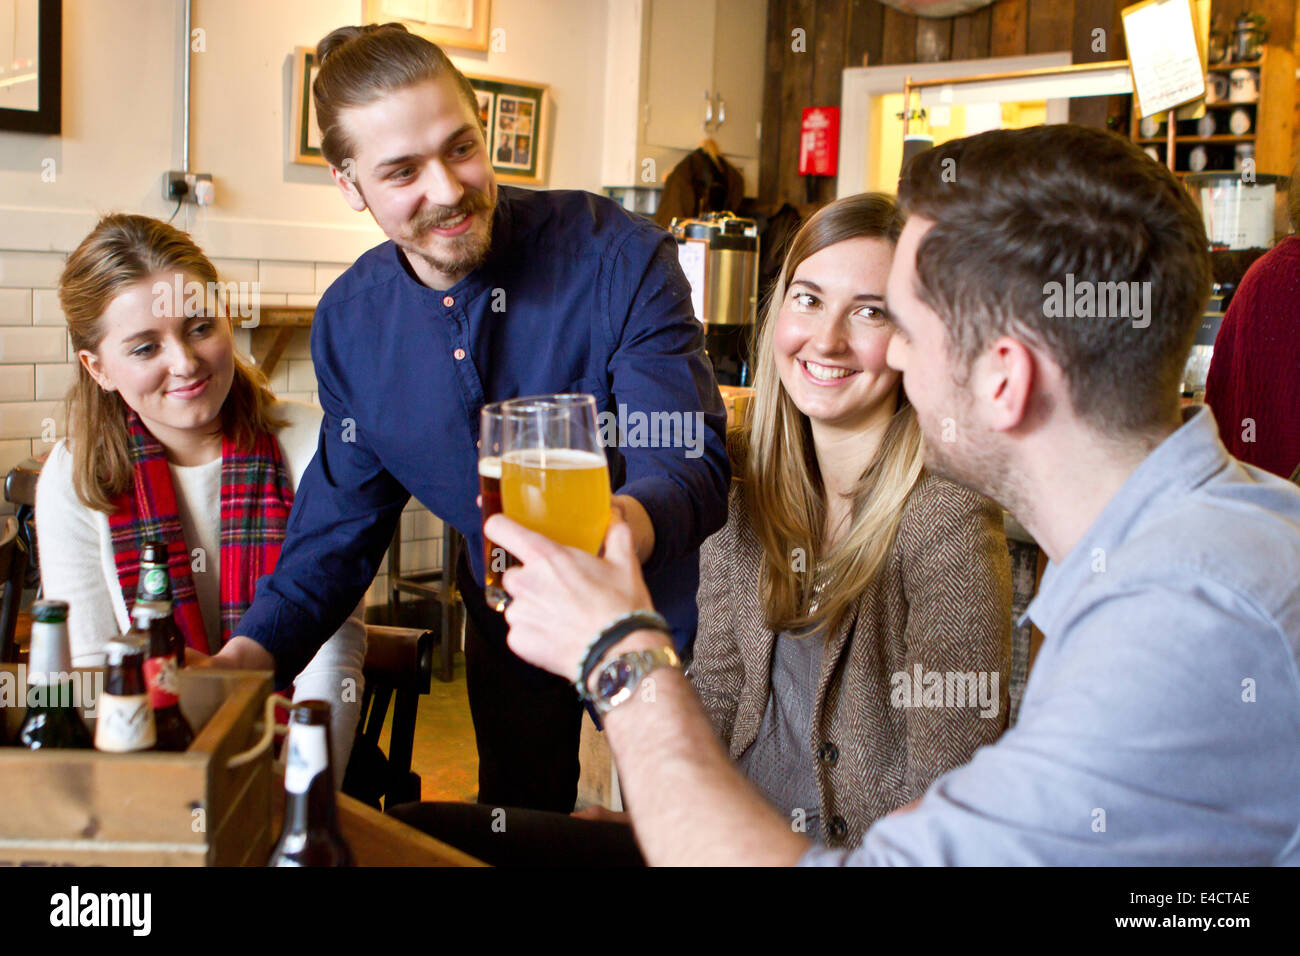 Young men toasting with beer in pub, Bournemouth, Dorset, England - Stock Image